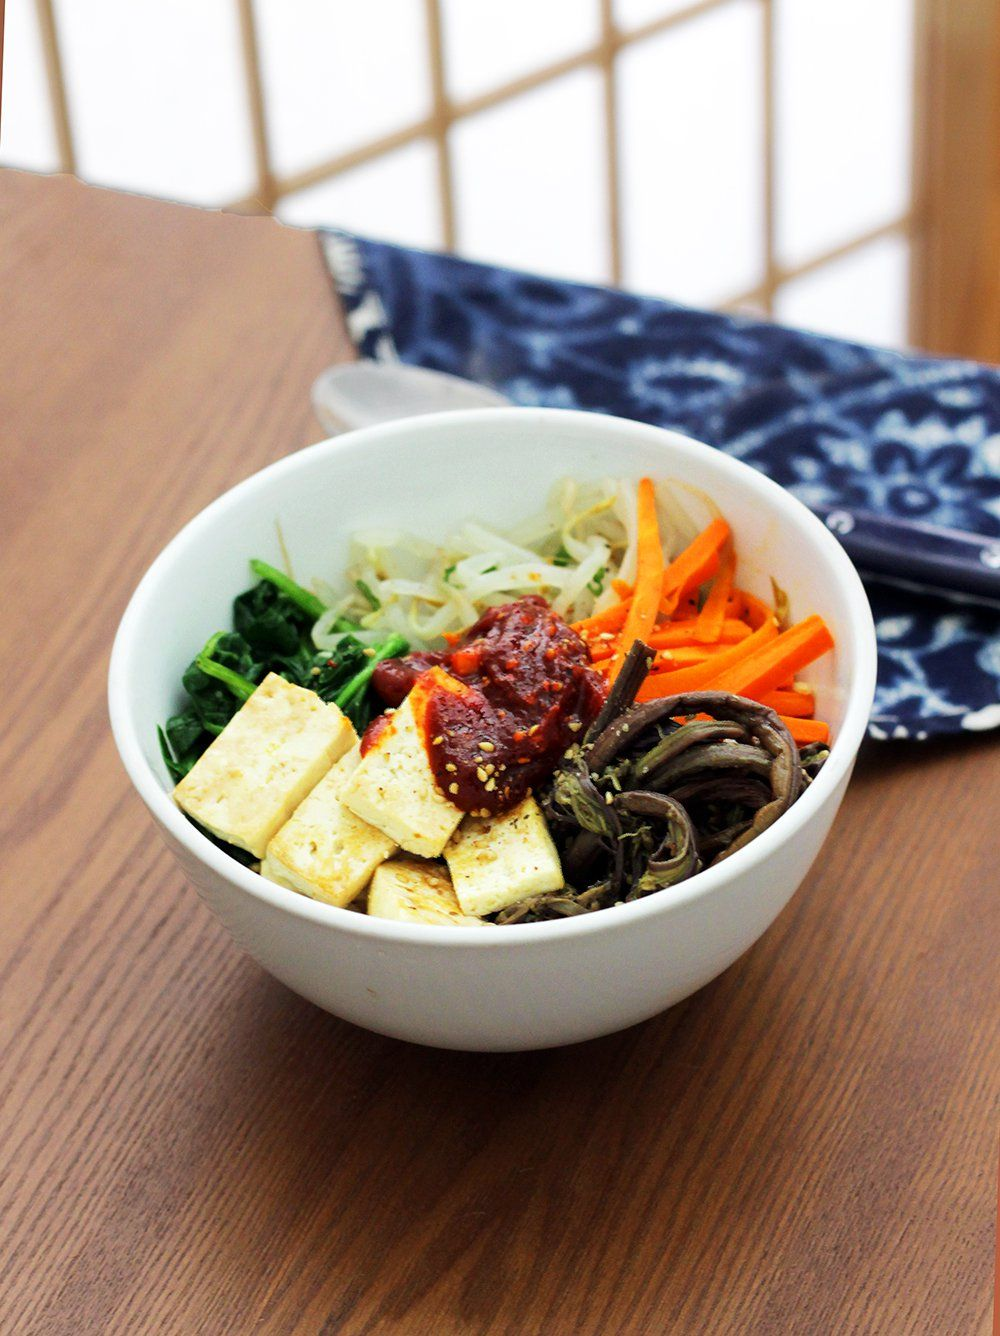 Vegan bibimbap mixed rice bowl rice bowls bibimbap recipe and vegan bibimbap mixed rice bowl korean food recipesvegetarian forumfinder Gallery